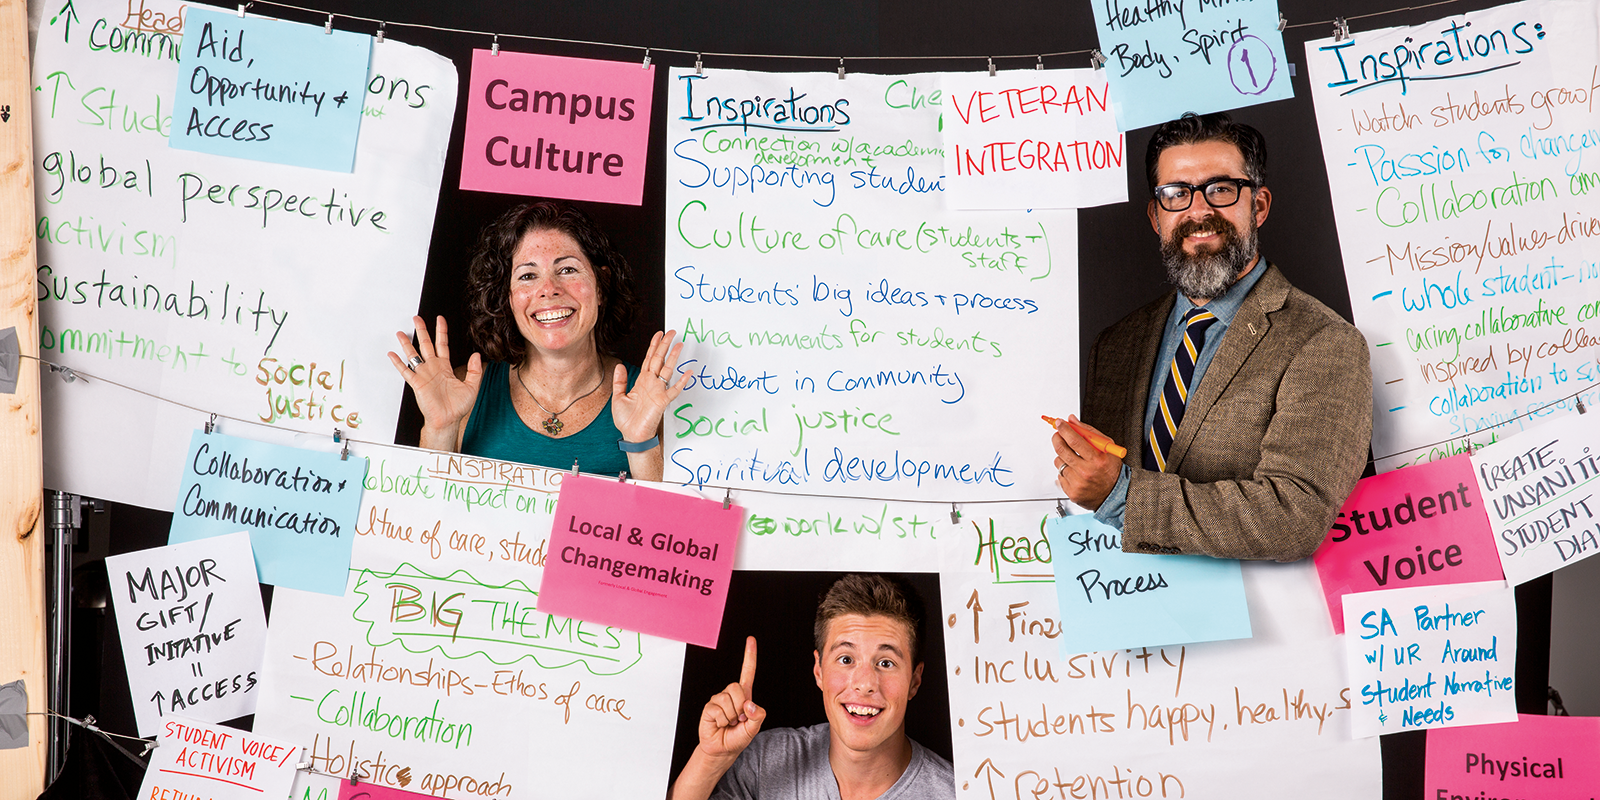 Associate Dean of Students Margaret Leary (above left), Associate Provost for Inclusion and Diversity Esteban del Rio (above right) and sophomore Crash Ketchum (above center).